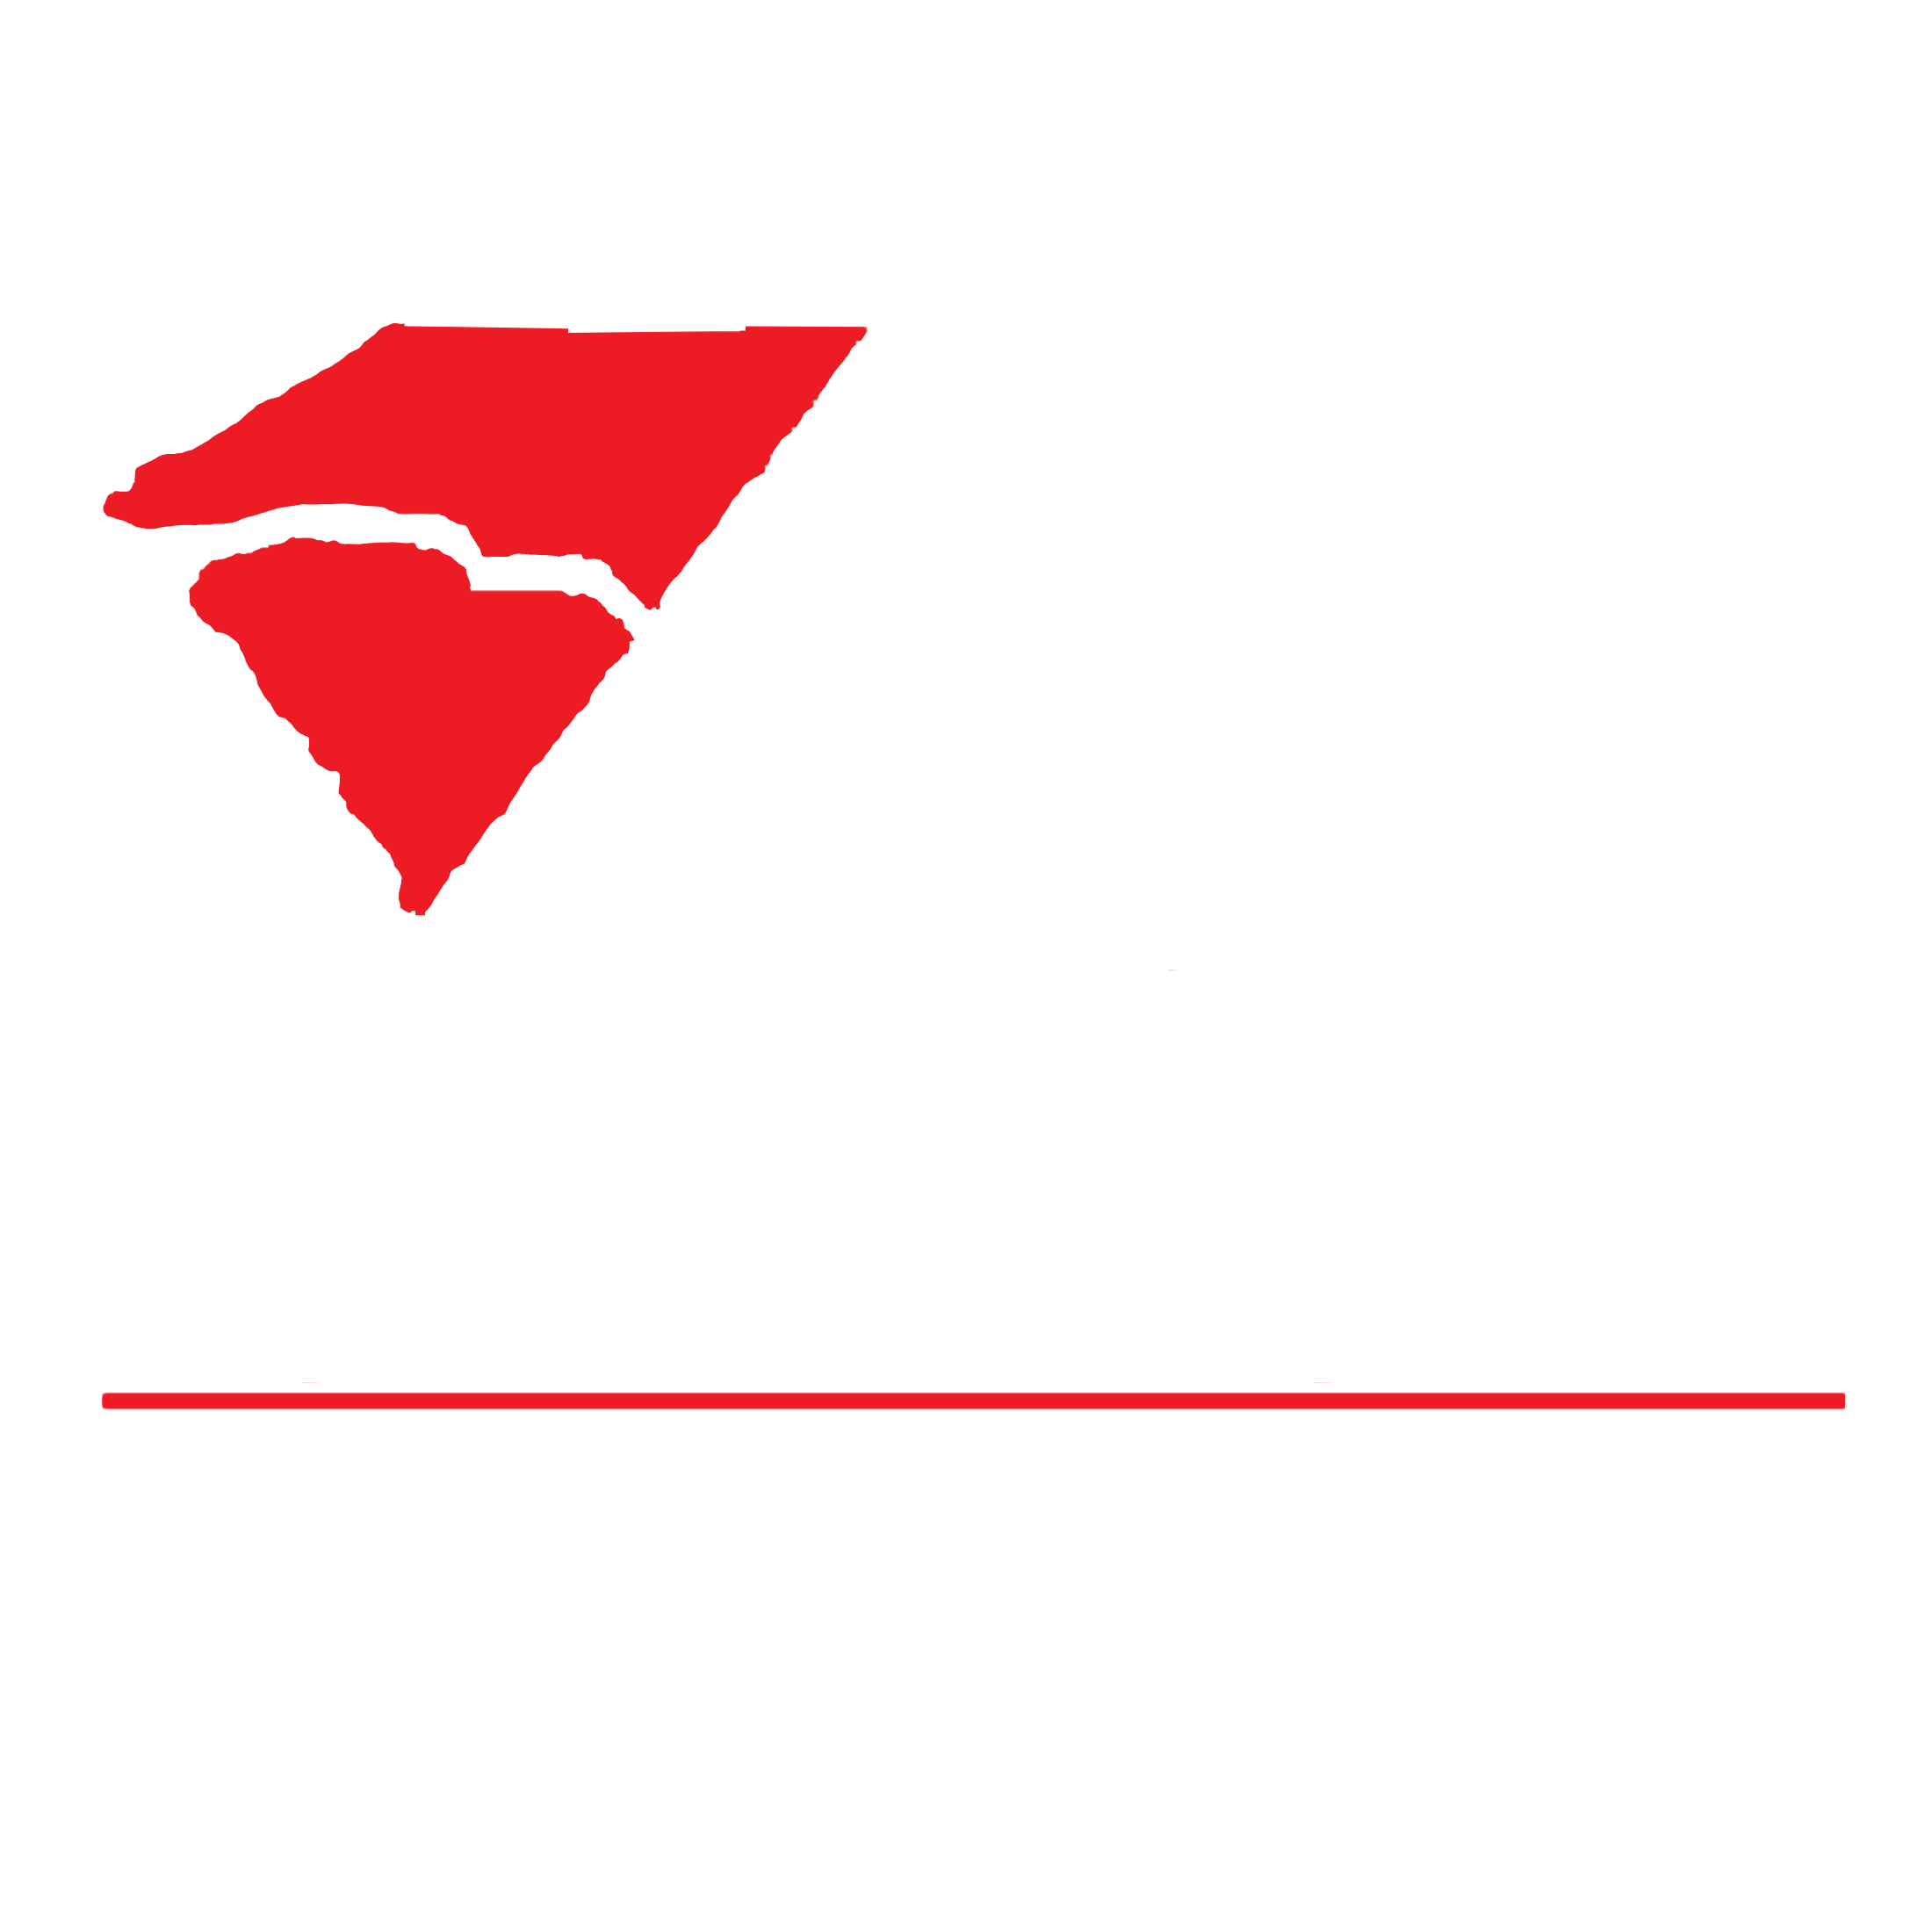 Alternative Roofing Solutions - ARS Roofing white logo